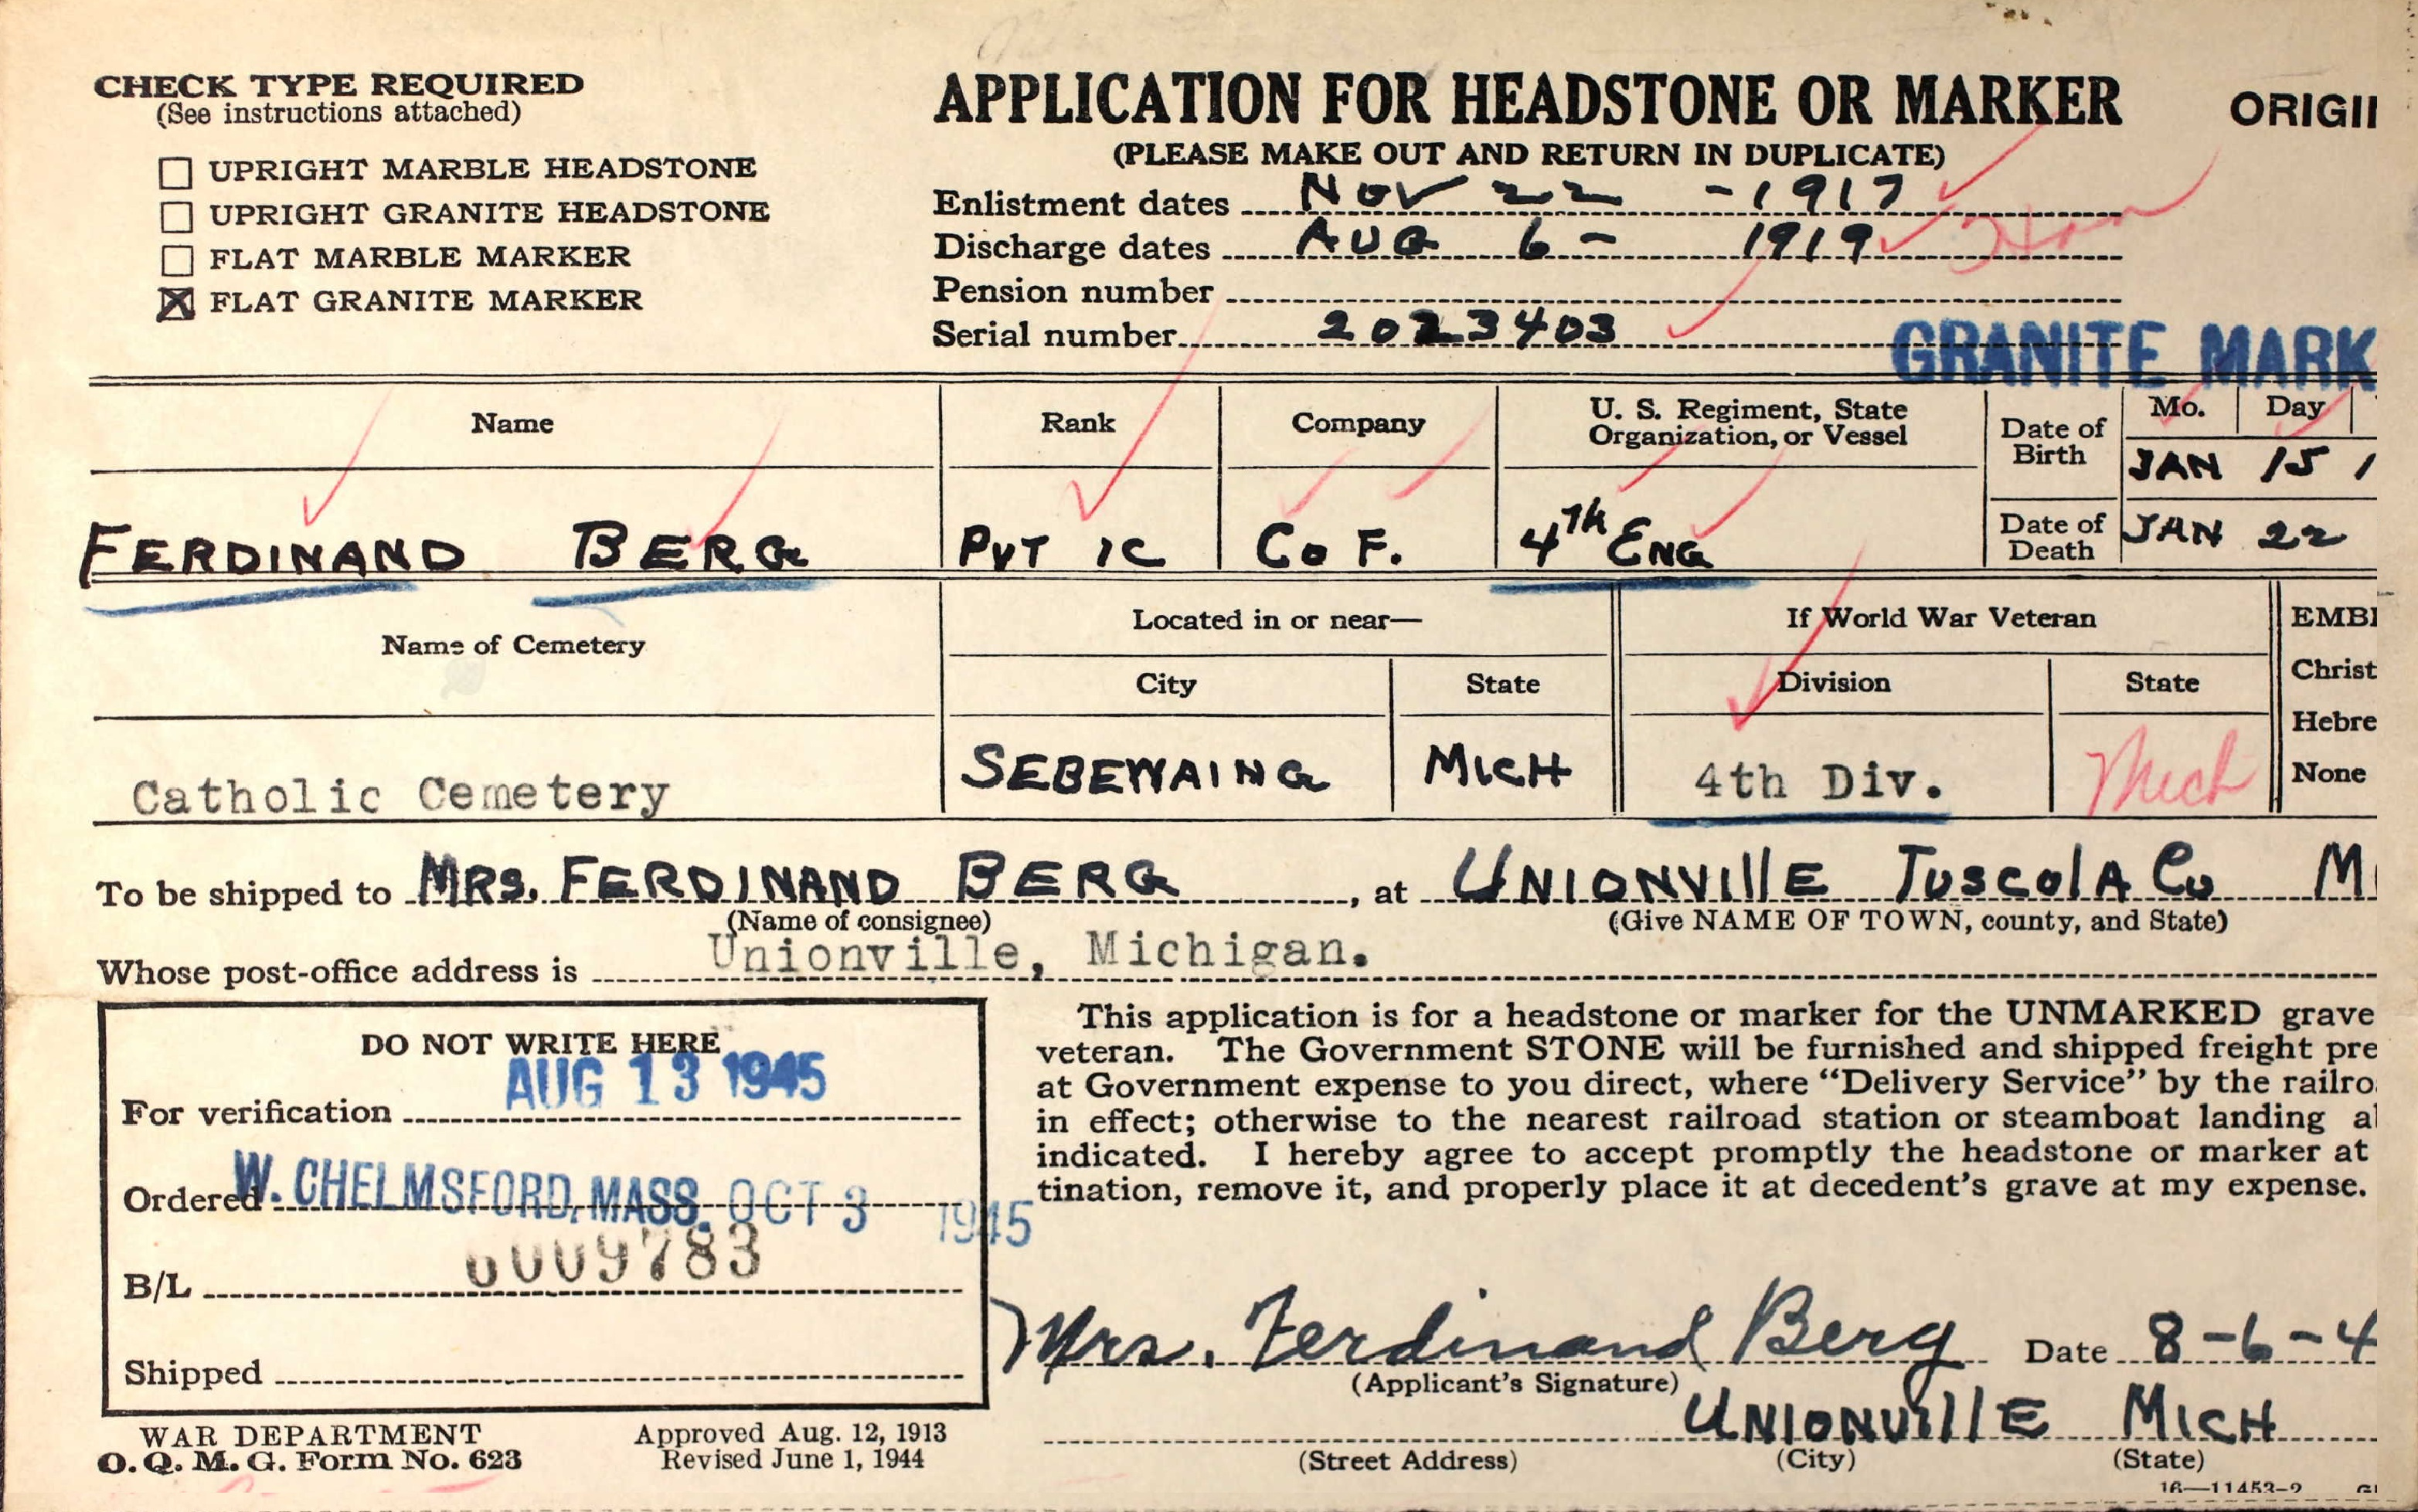 Application for military headstone for Ferdinand Berg.